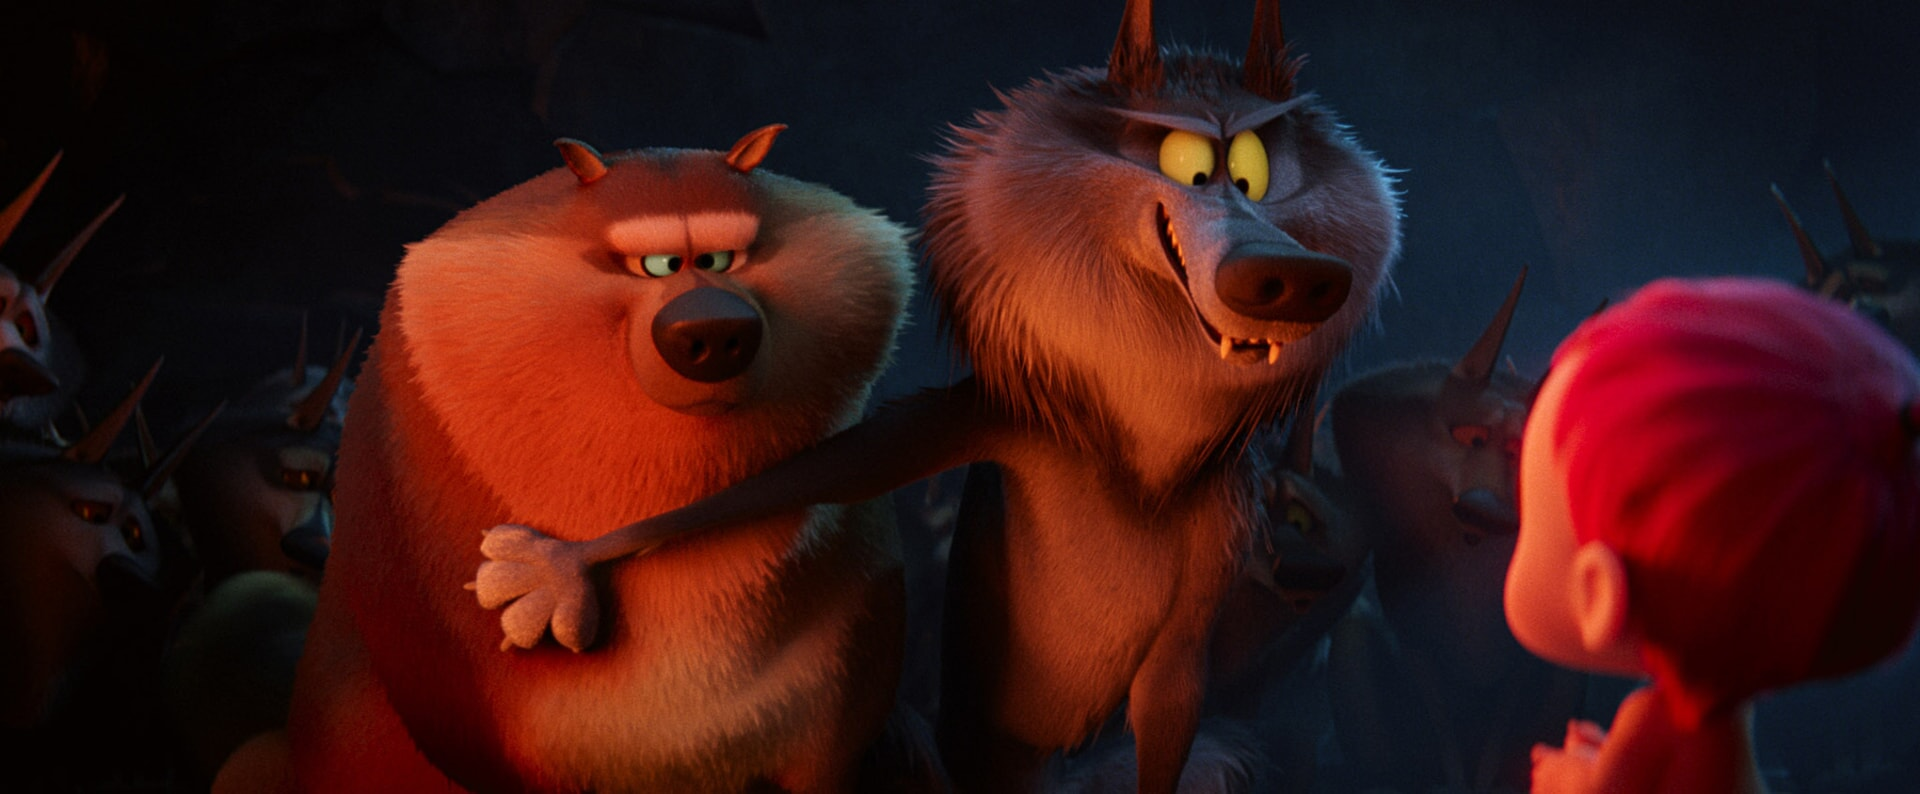 Beta Wolf voiced by JORDAN PEELE and Alpha Wolf voiced by KEEGAN-MICHAEL KEY